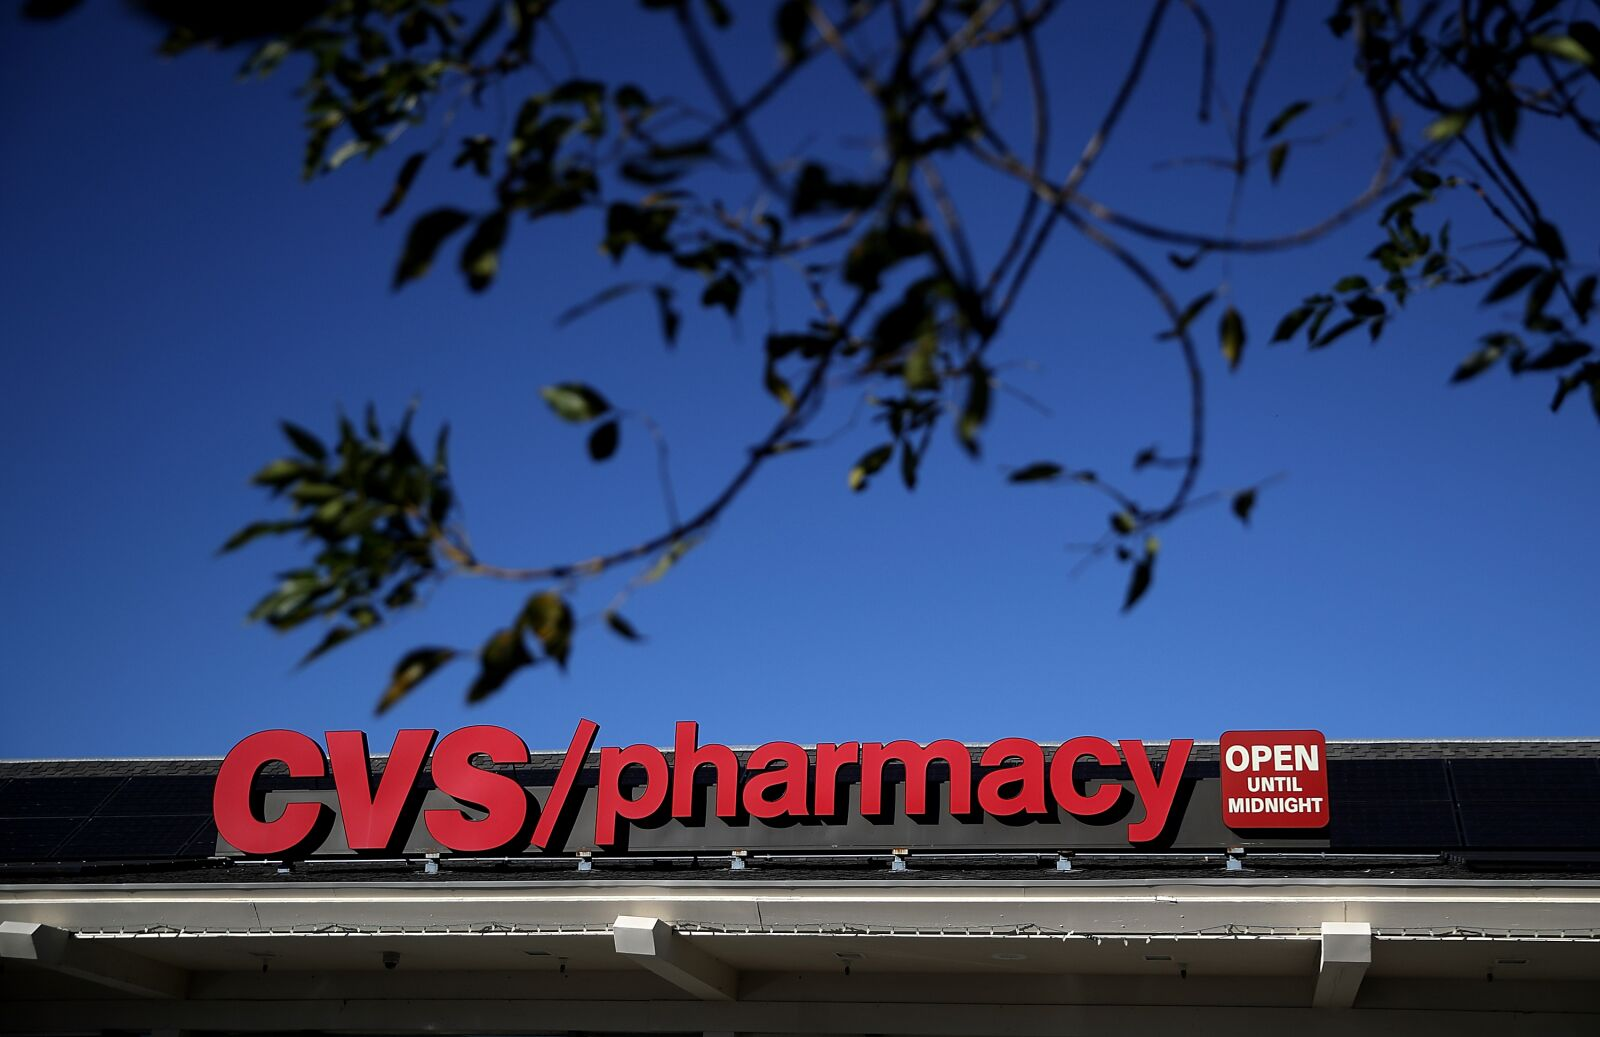 thanksgiving is cvs open on turkey day for my convenience